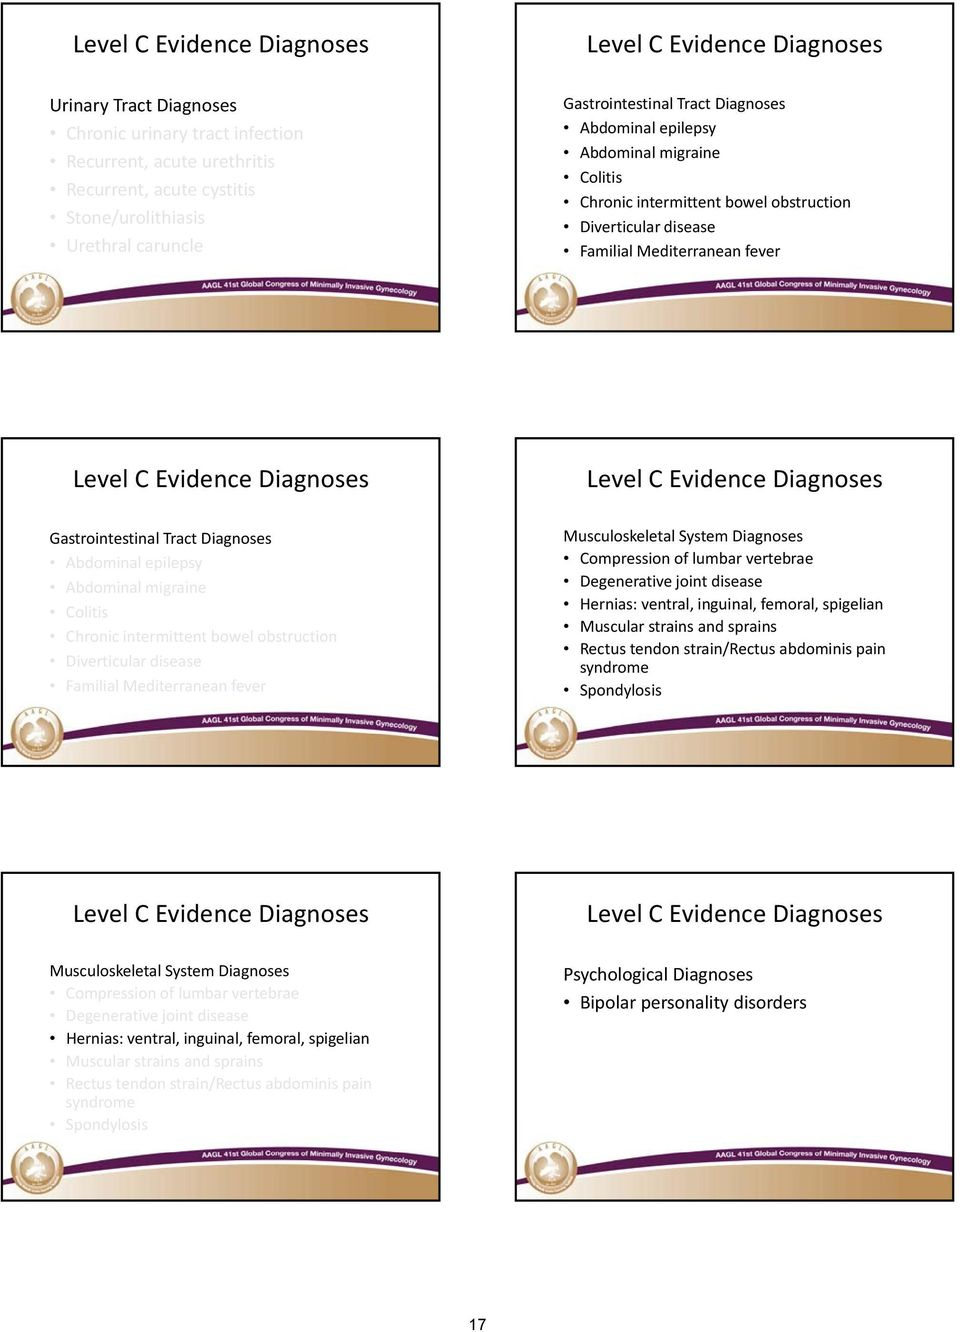 Diagnoses Musculoskeletal System Diagnoses Compression of lumbar vertebrae Degenerative joint disease Hernias: ventral, inguinal, femoral, spigelian Muscular strains and sprains Rectus tendon